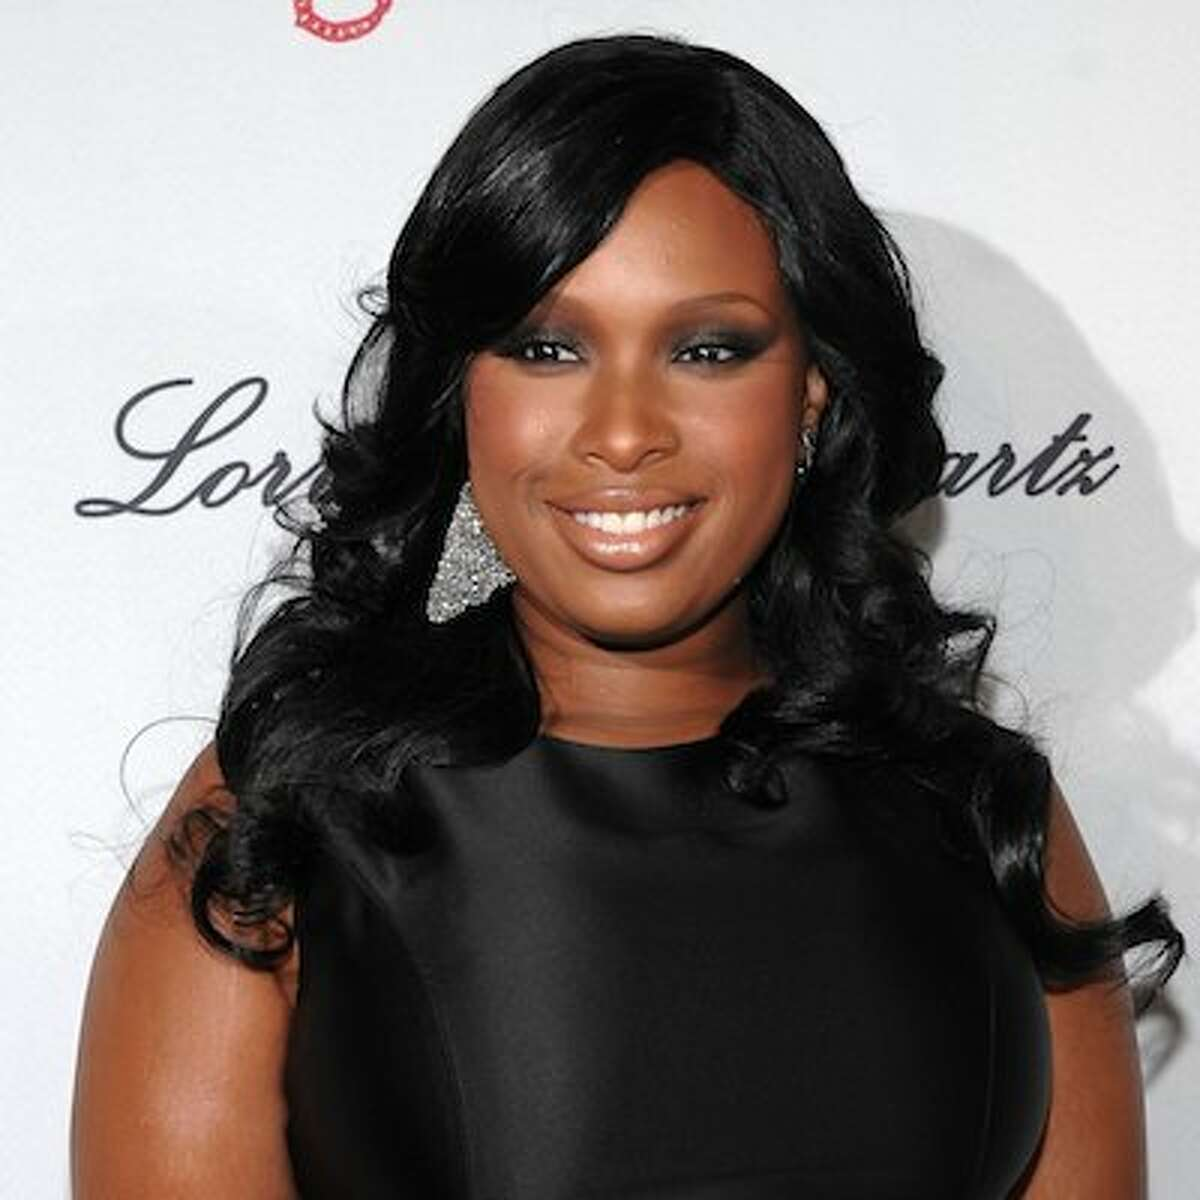 Singer Jennifer Hudson attends 2009 Angel Ball to Benefit Gabrielleís Angel Foundation hosted by Denise Rich at Cipriani, Wall Street on October 20, 2009 in New York, New York. Denise Rich Hosts 2009 Angel Ball to Benefit Gabrielle's Angel Foundation ñ Red Carpet Cipriani, Wall Street New York, NY United States October 20, 2009 Photo by Dimitrios Kambouris/WireImage.com To license this image (58696575), contact WireImage.com